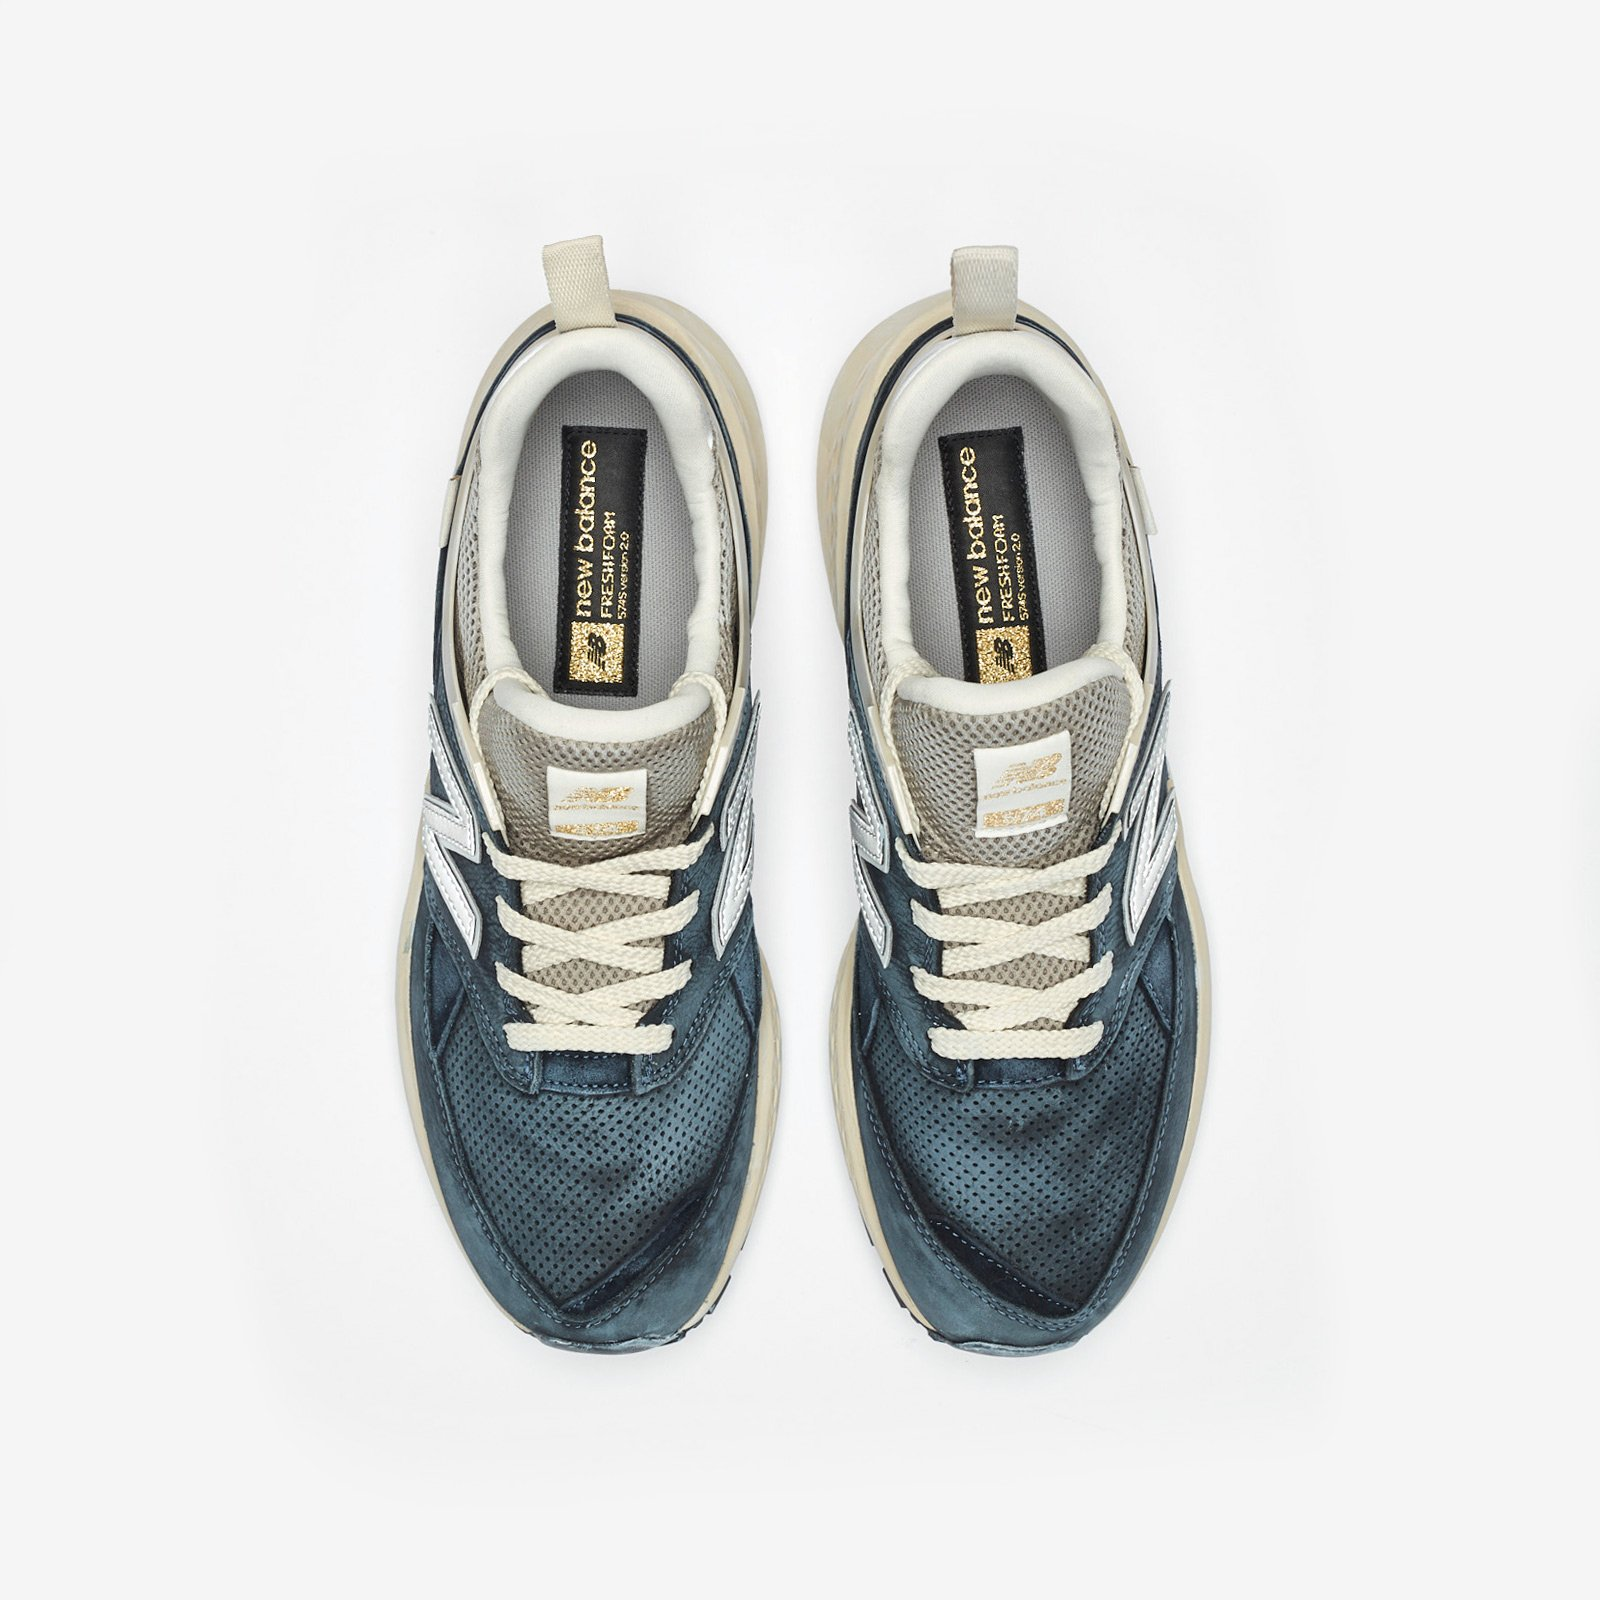 new product 4053d 70f91 New Balance MS574 - Ms574vc - Sneakersnstuff | sneakers ...